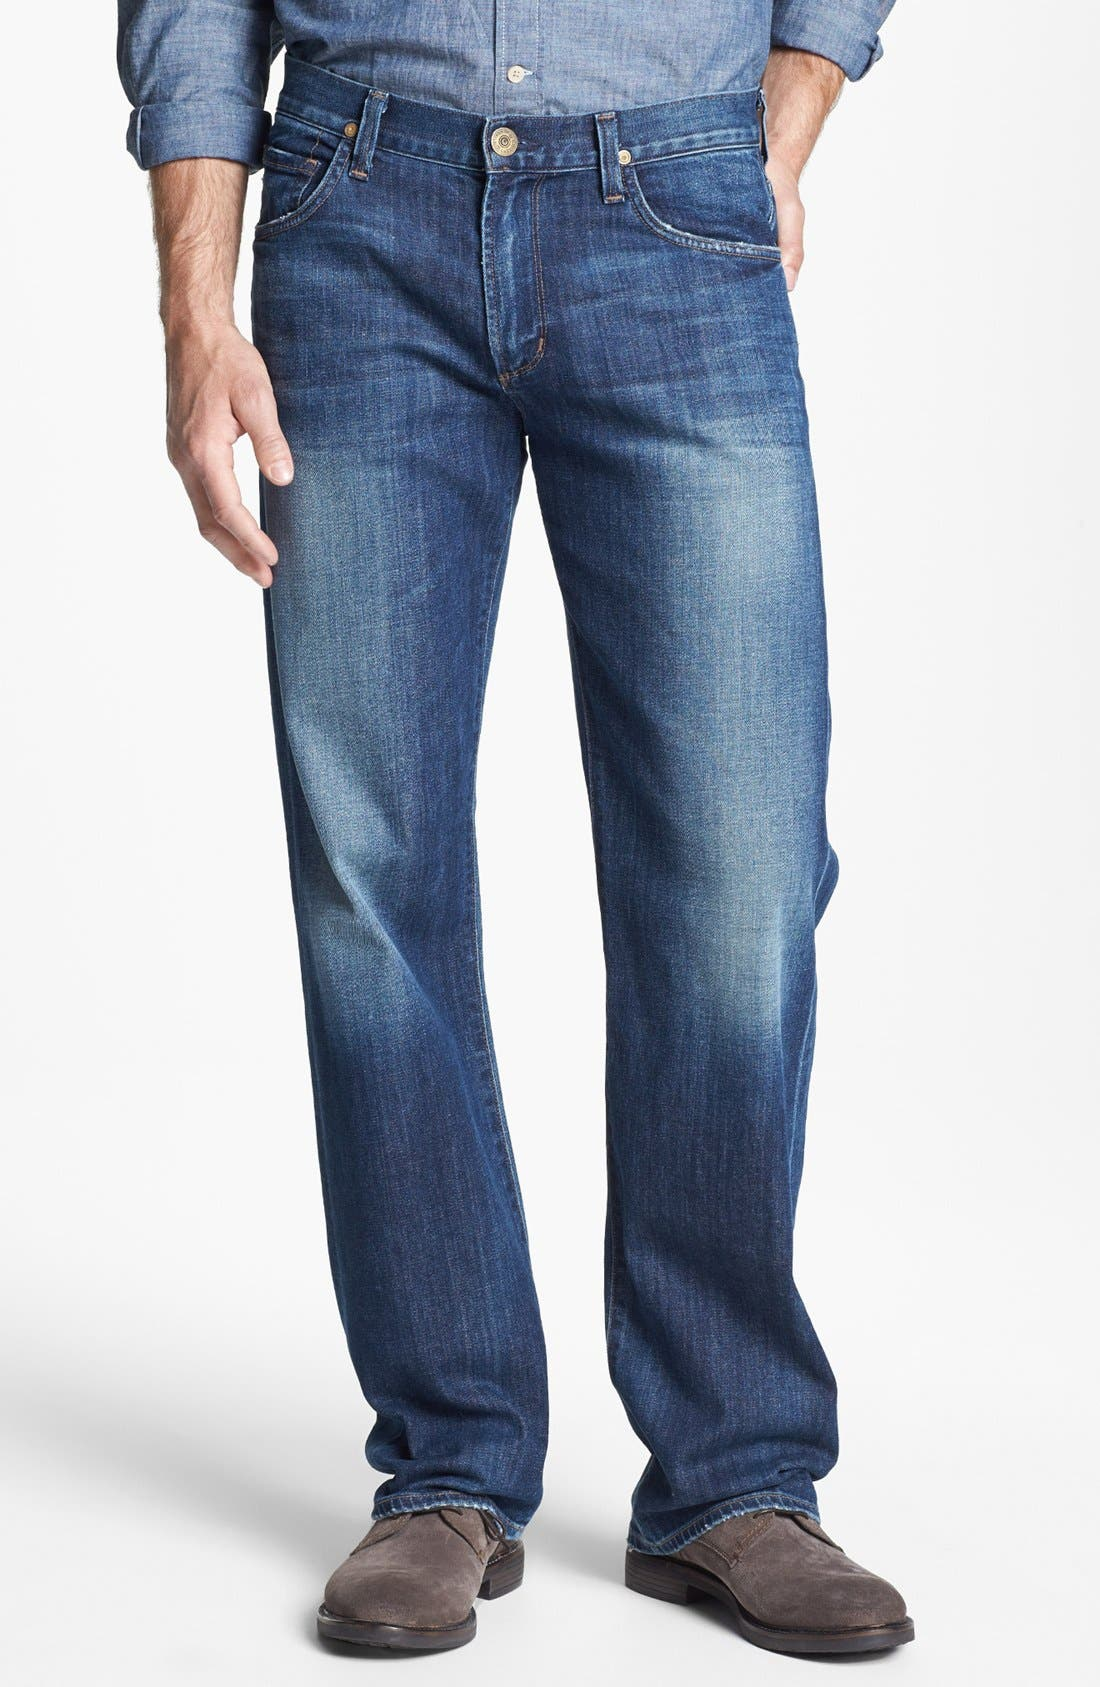 Main Image - Citizens of Humanity 'Evans' Relaxed Fit Jeans (Davis)